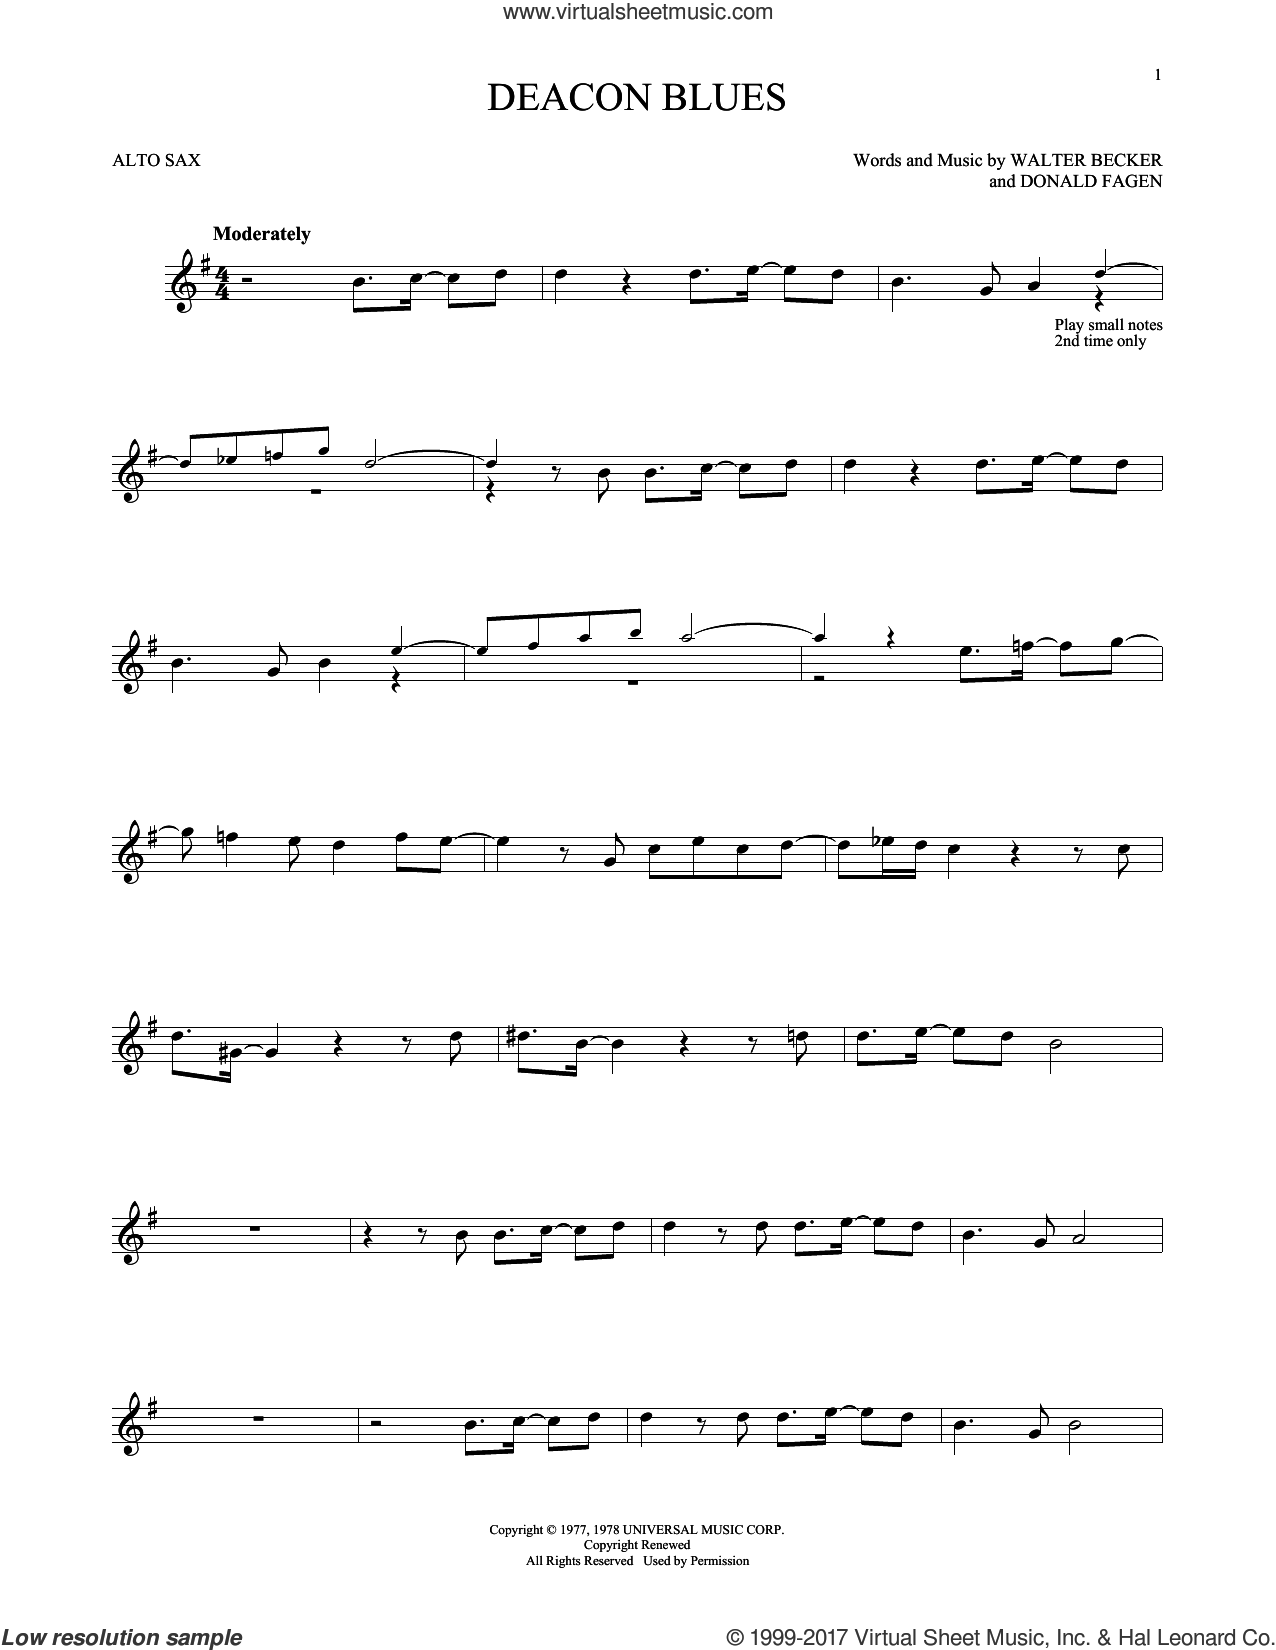 Deacon Blues sheet music for alto saxophone solo by Steely Dan, Donald Fagen and Walter Becker, intermediate skill level